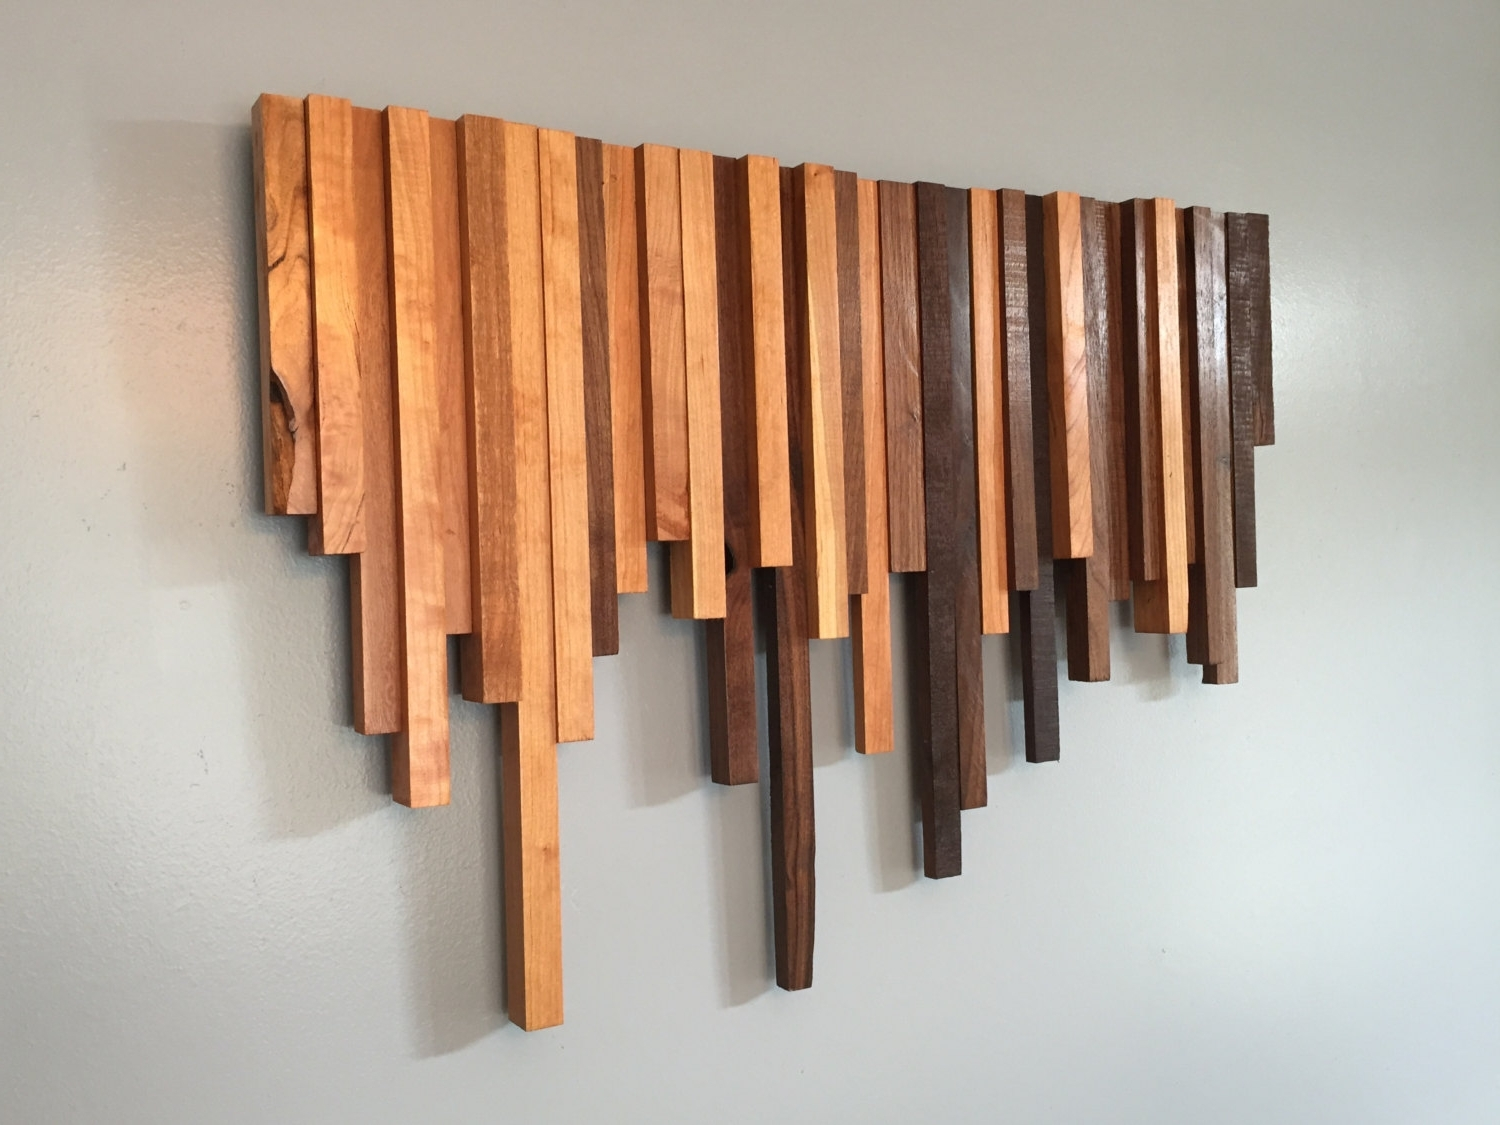 20 Wood Wall Art Design Ideas With Different Styles • Recous Throughout Trendy Wall Art On Wood (View 3 of 15)